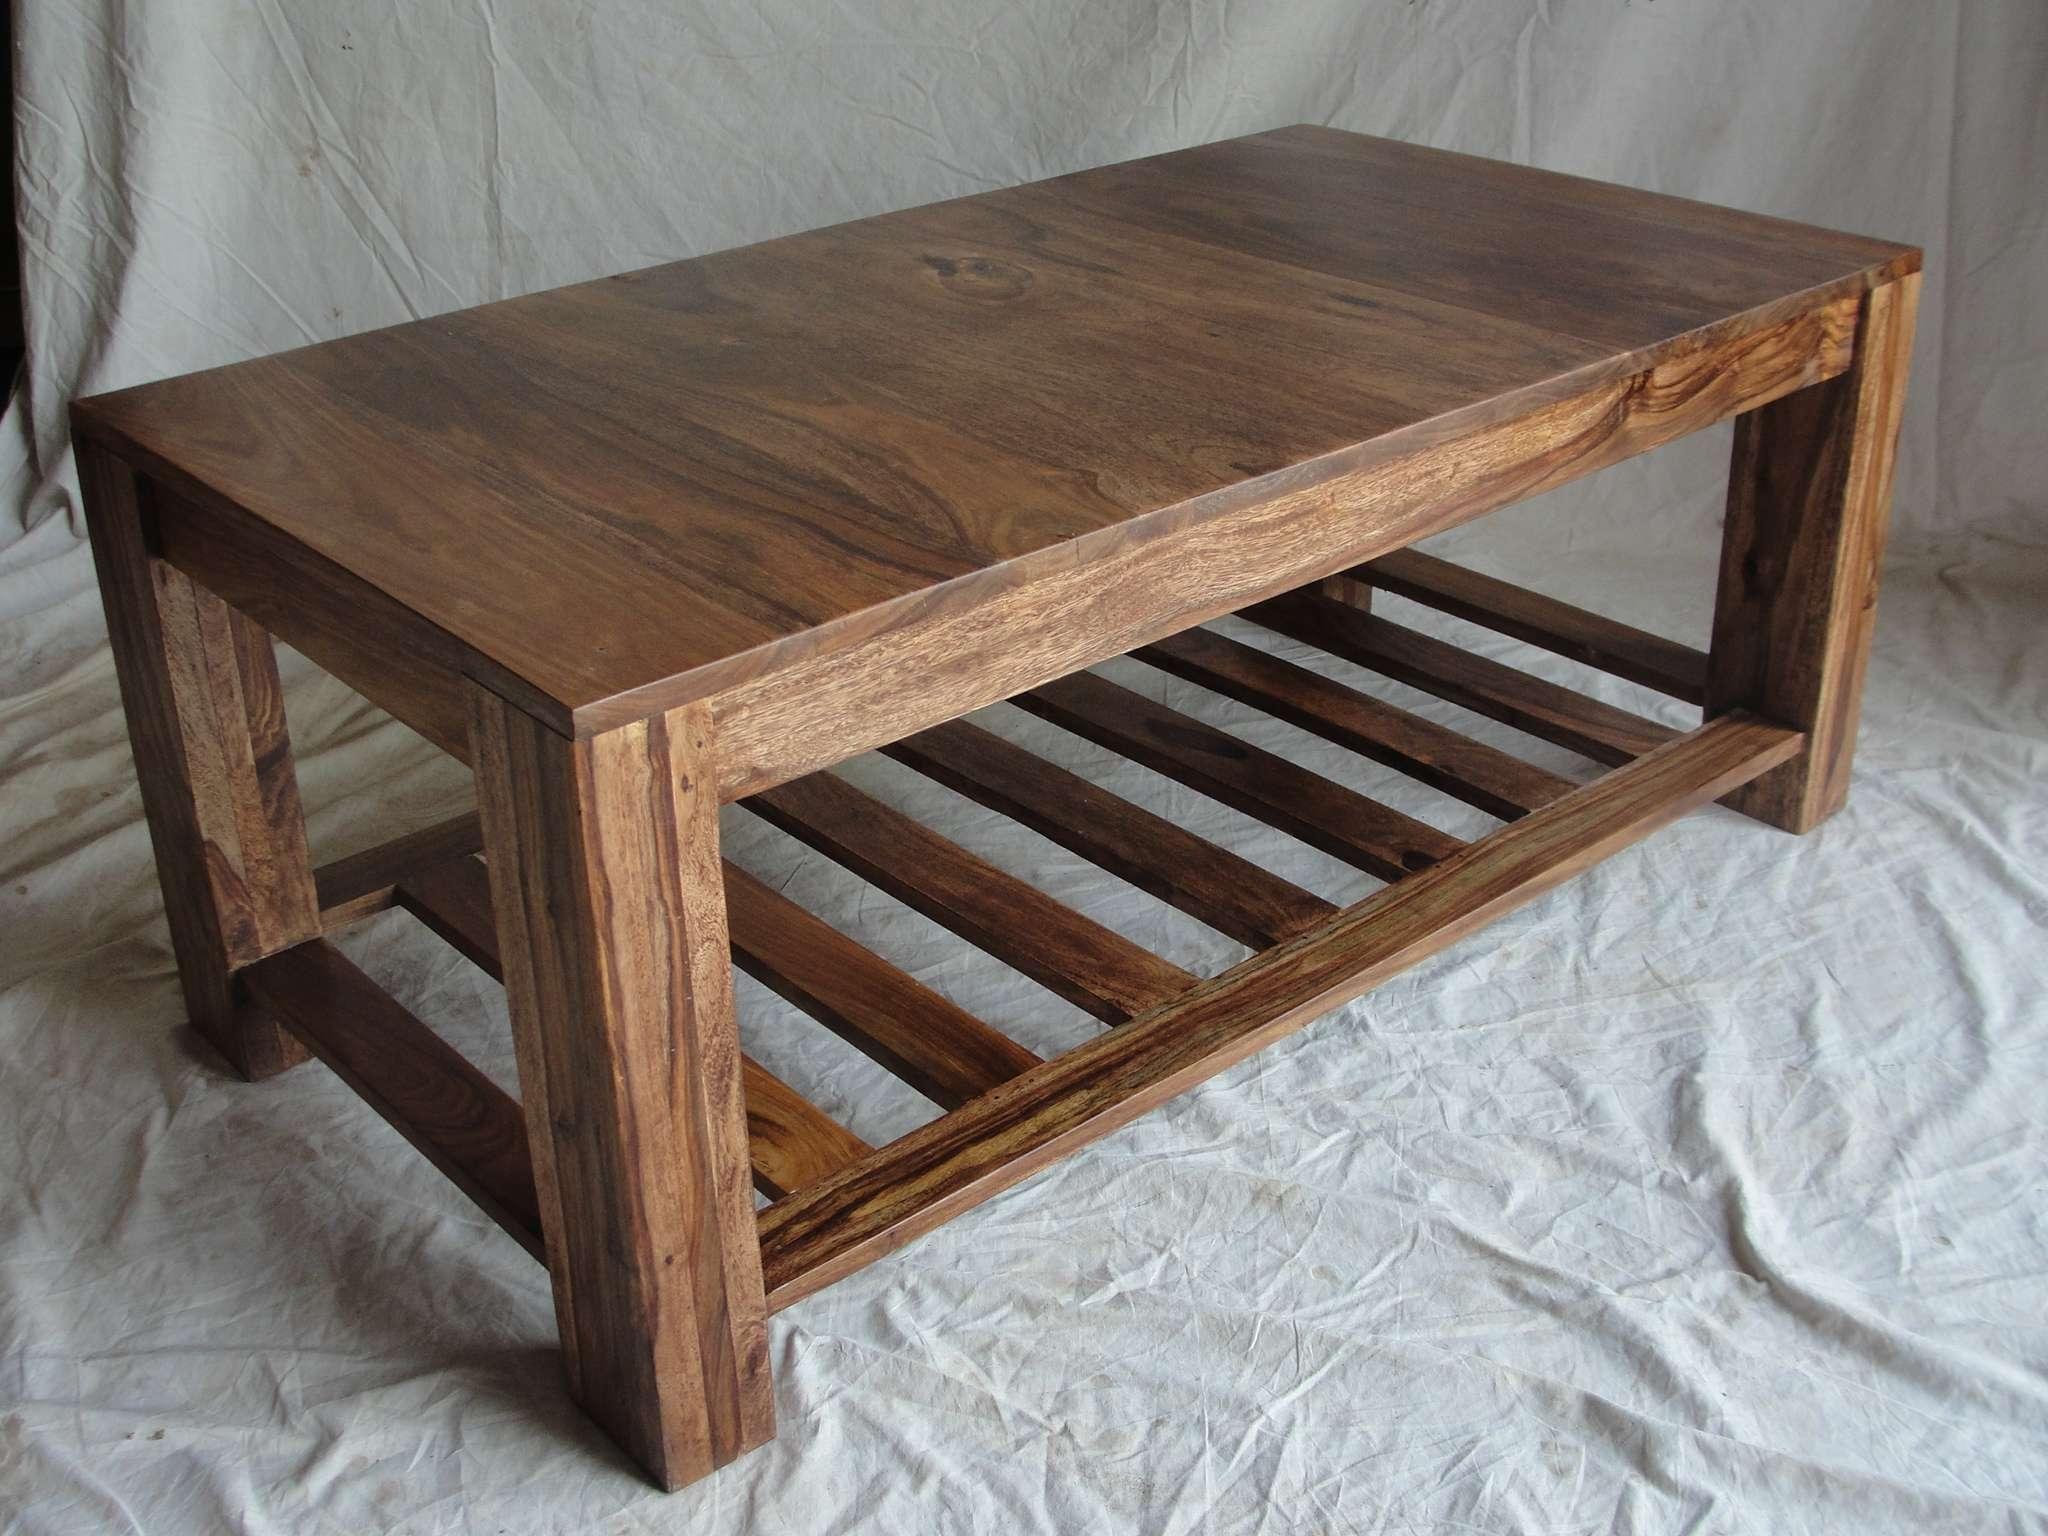 Wooden Coffee Tables Diy – Wooden Coffee Tables And How To Prevent Inside Most Popular Wooden Coffee Tables (View 20 of 20)